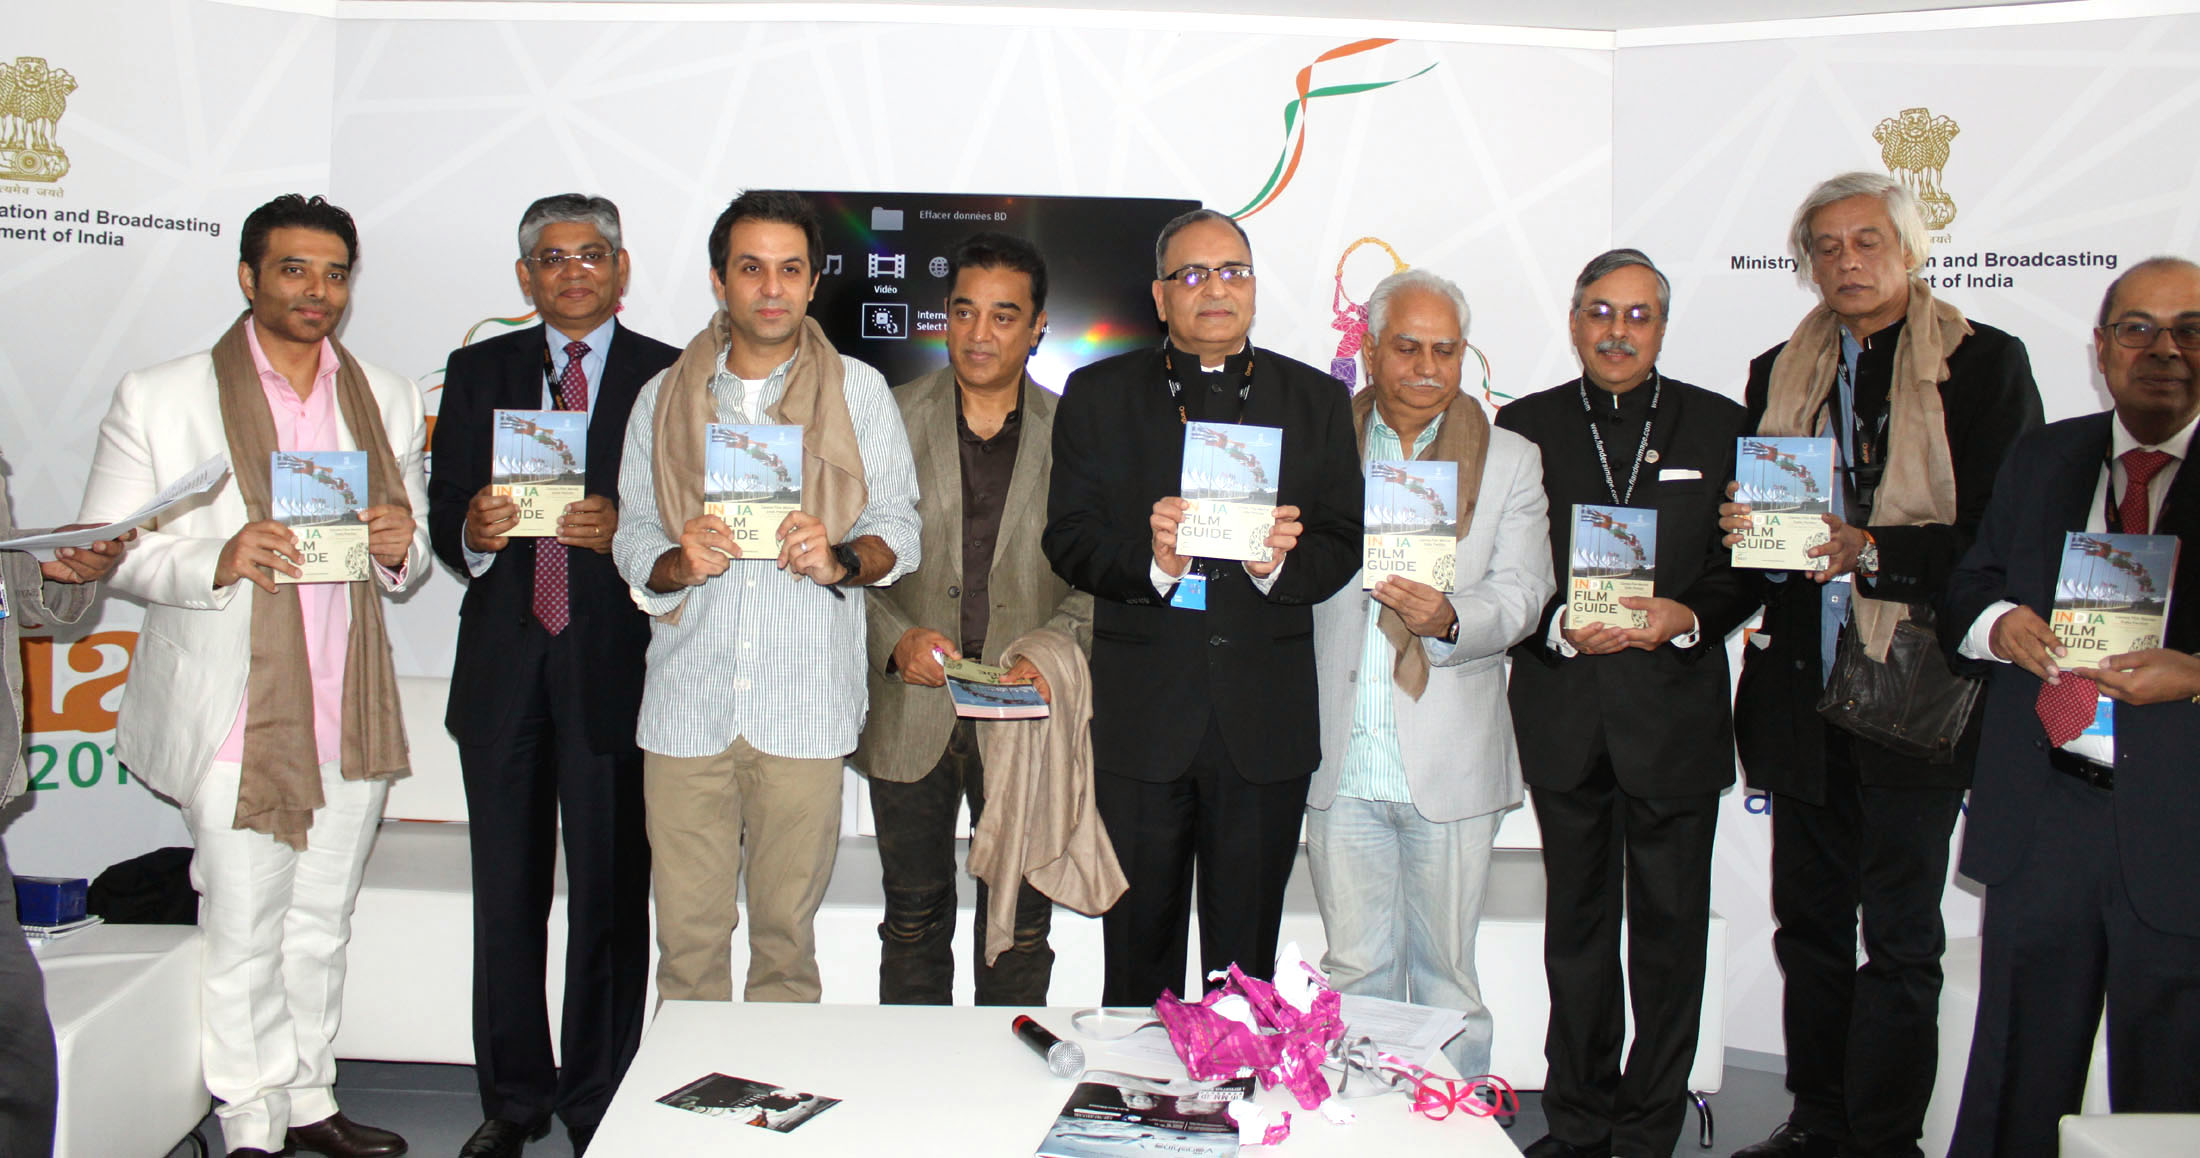 India Pavilion opens at 67th Annual Cannes Film Festival